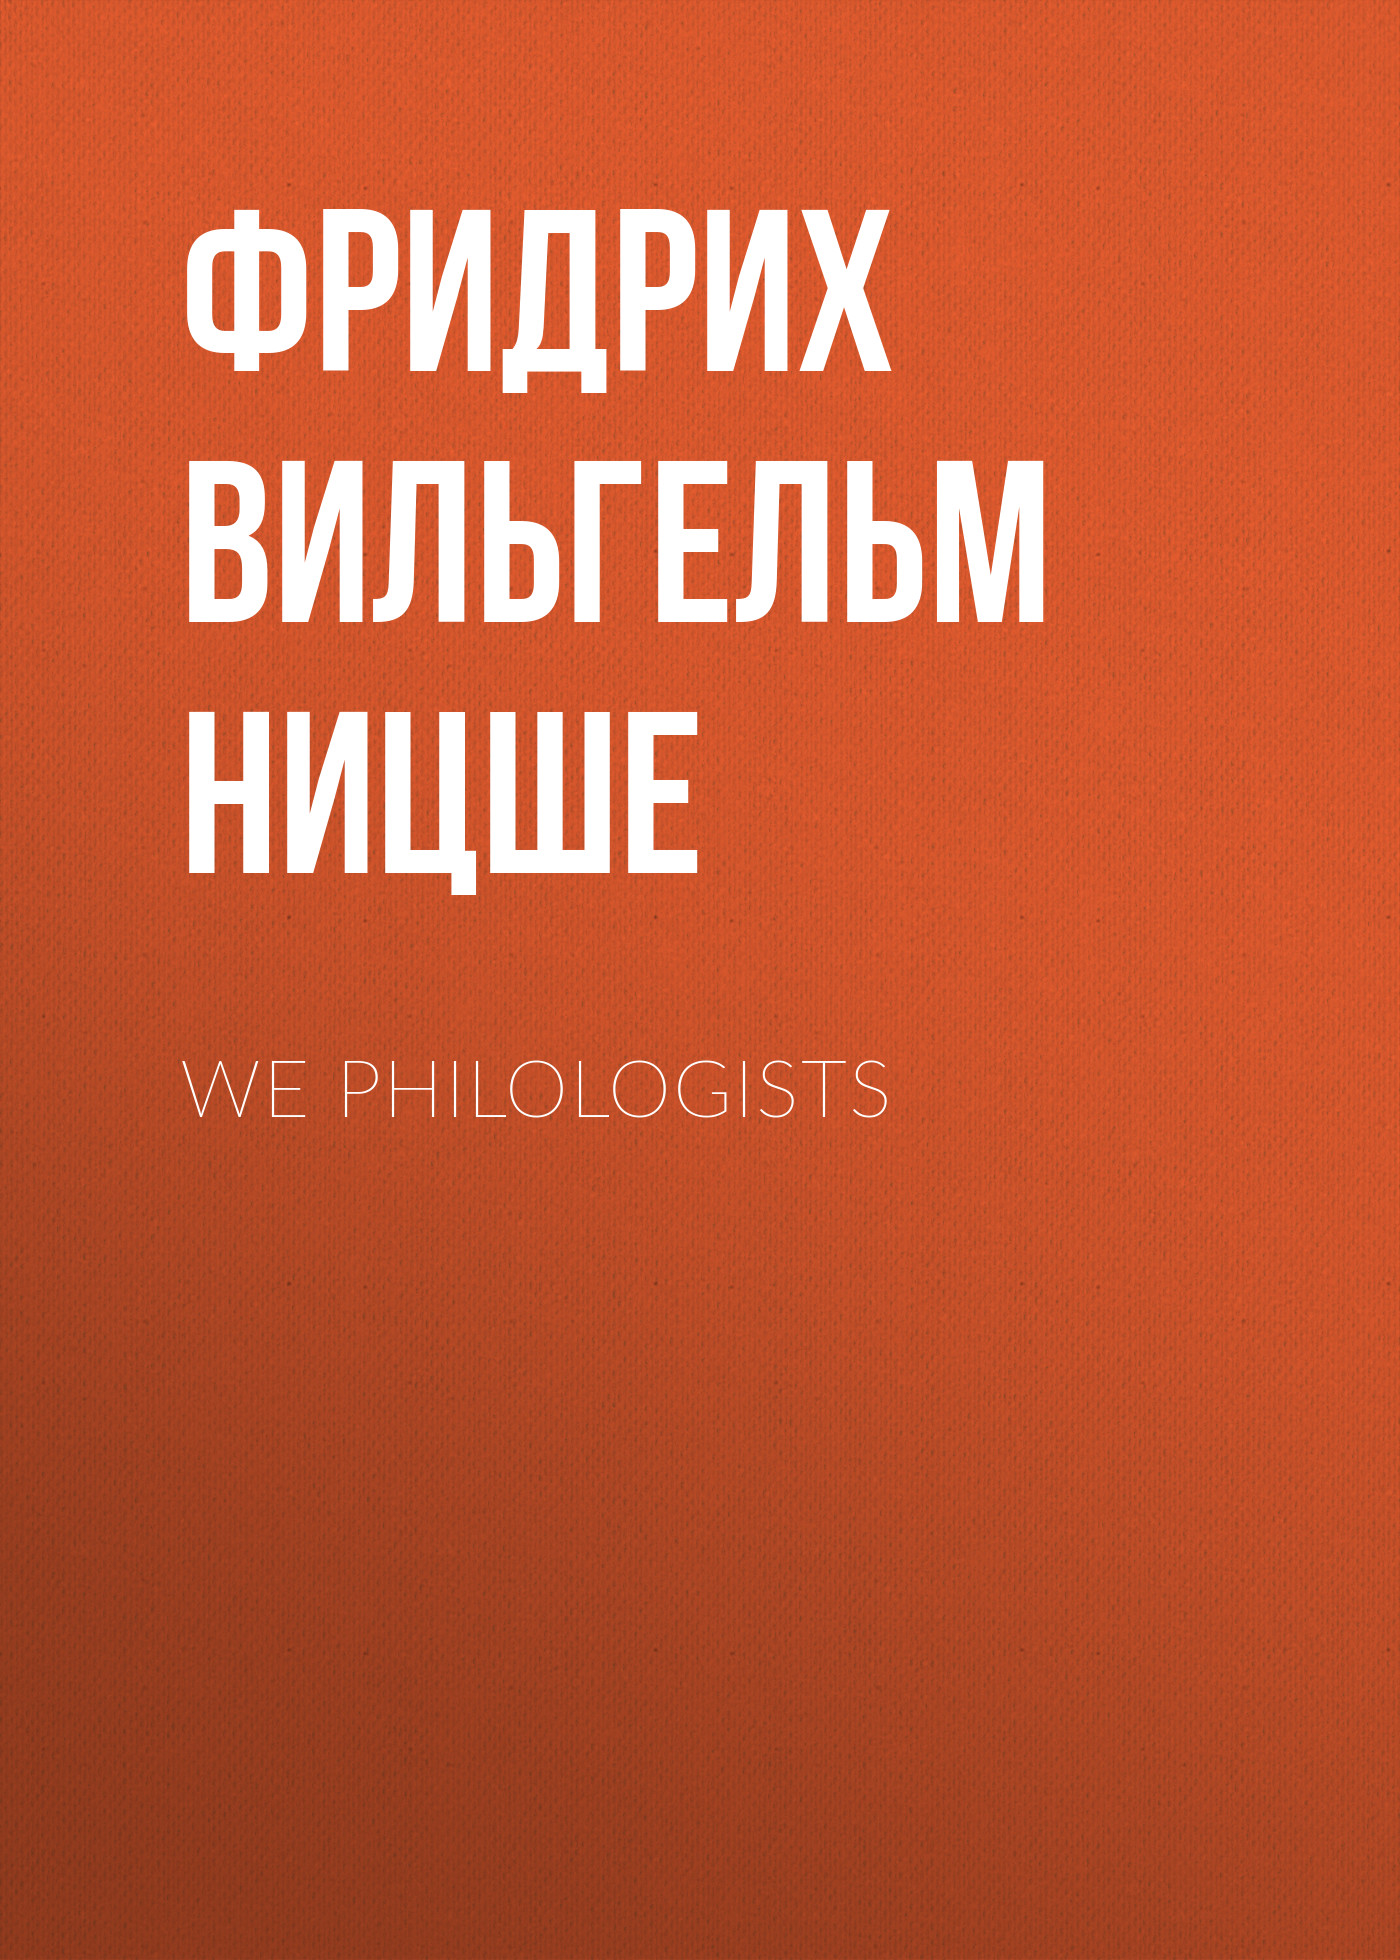 Фридрих Вильгельм Ницше We Philologists